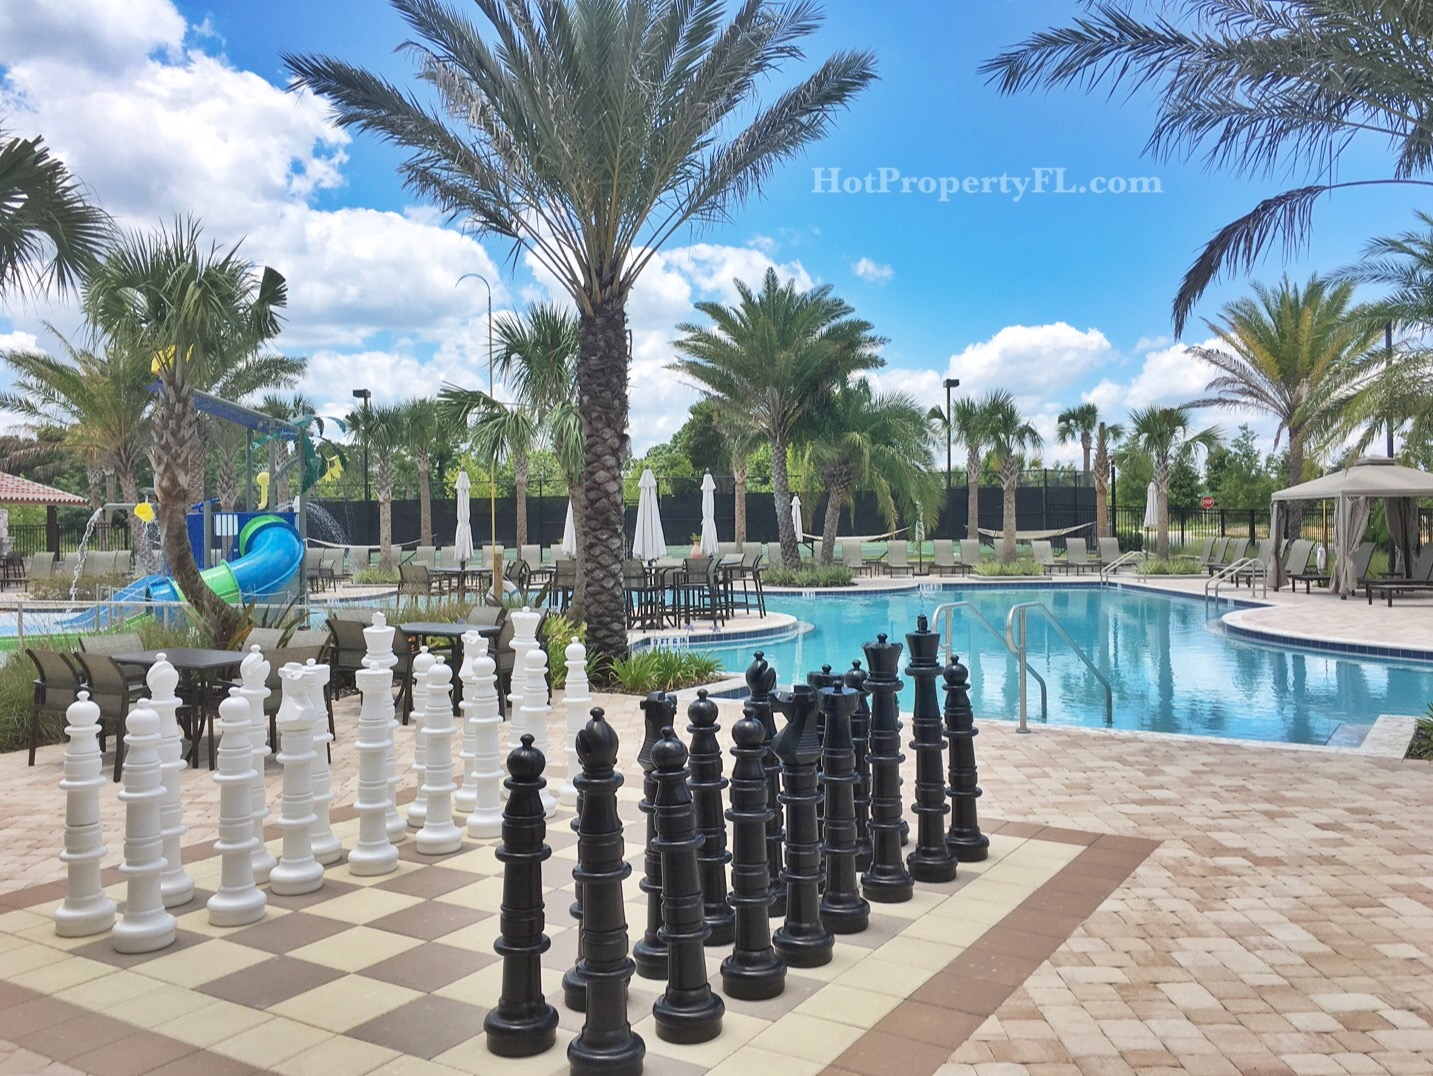 watermark homes for sale by heritage homes in Winter Garden FL 34787